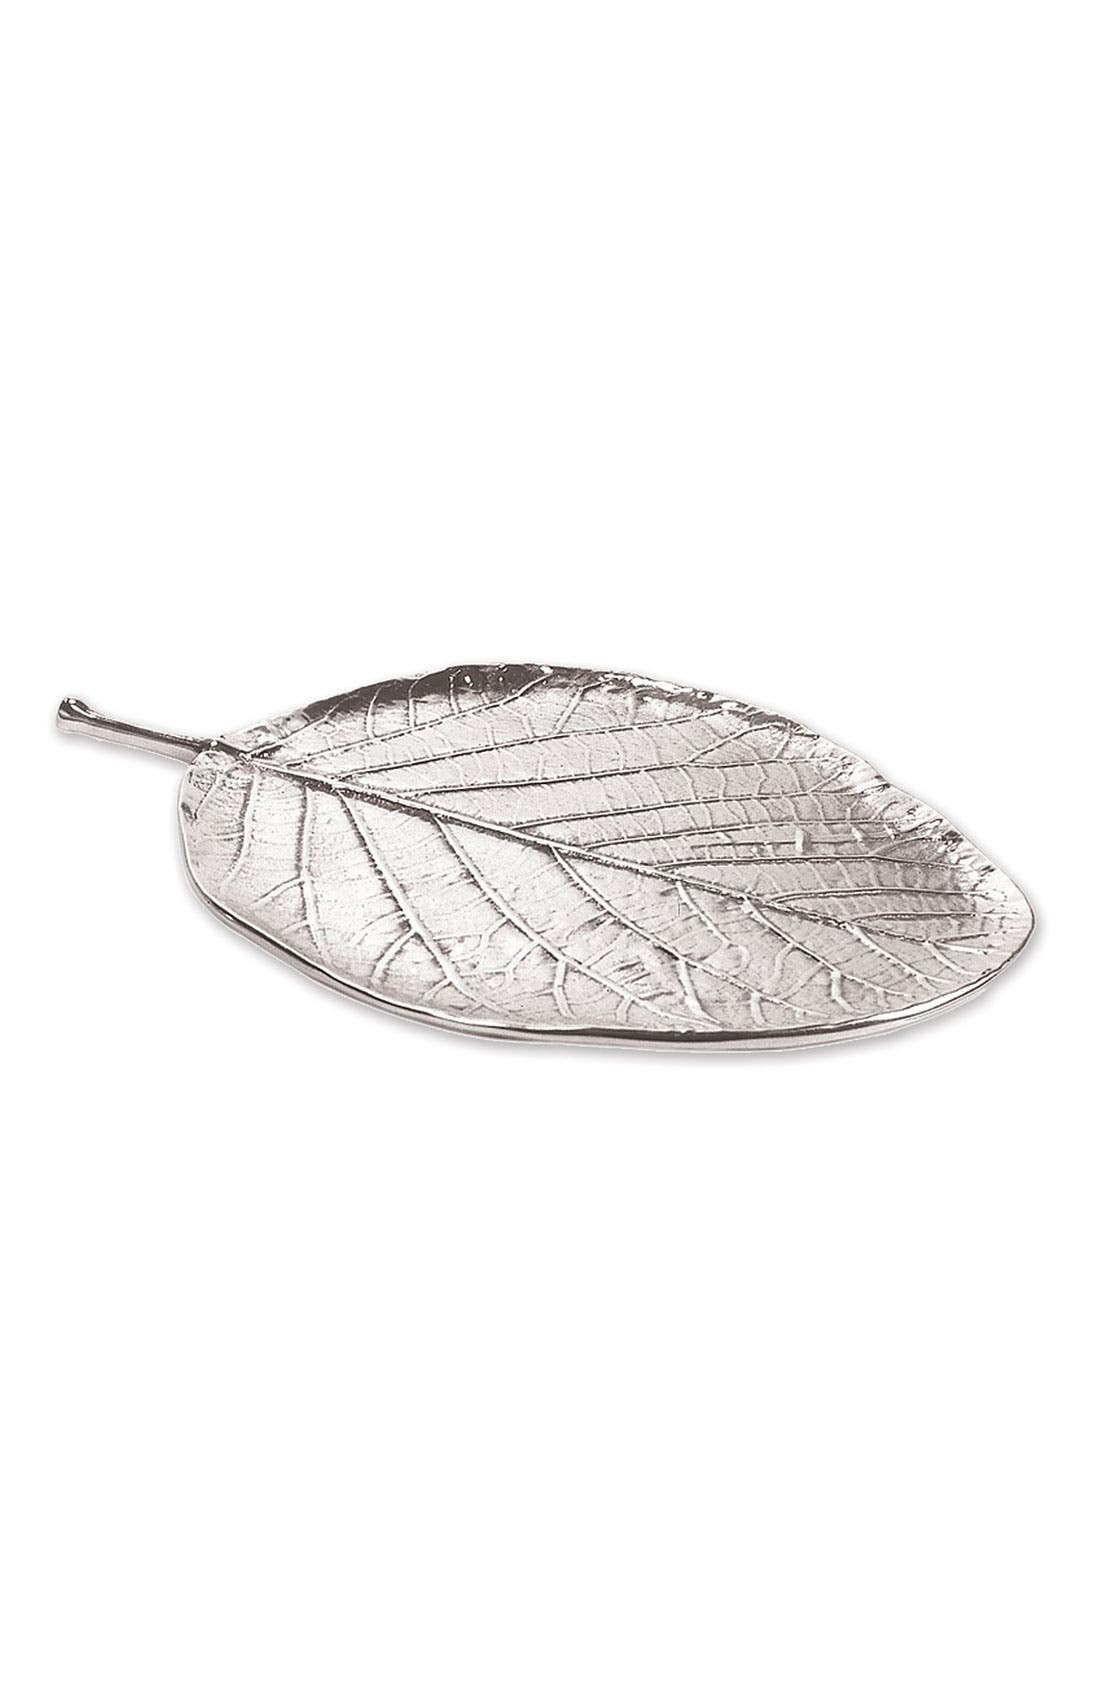 Alternate Image 1 Selected - Michael Aram 'Botanical Leaf' Tray